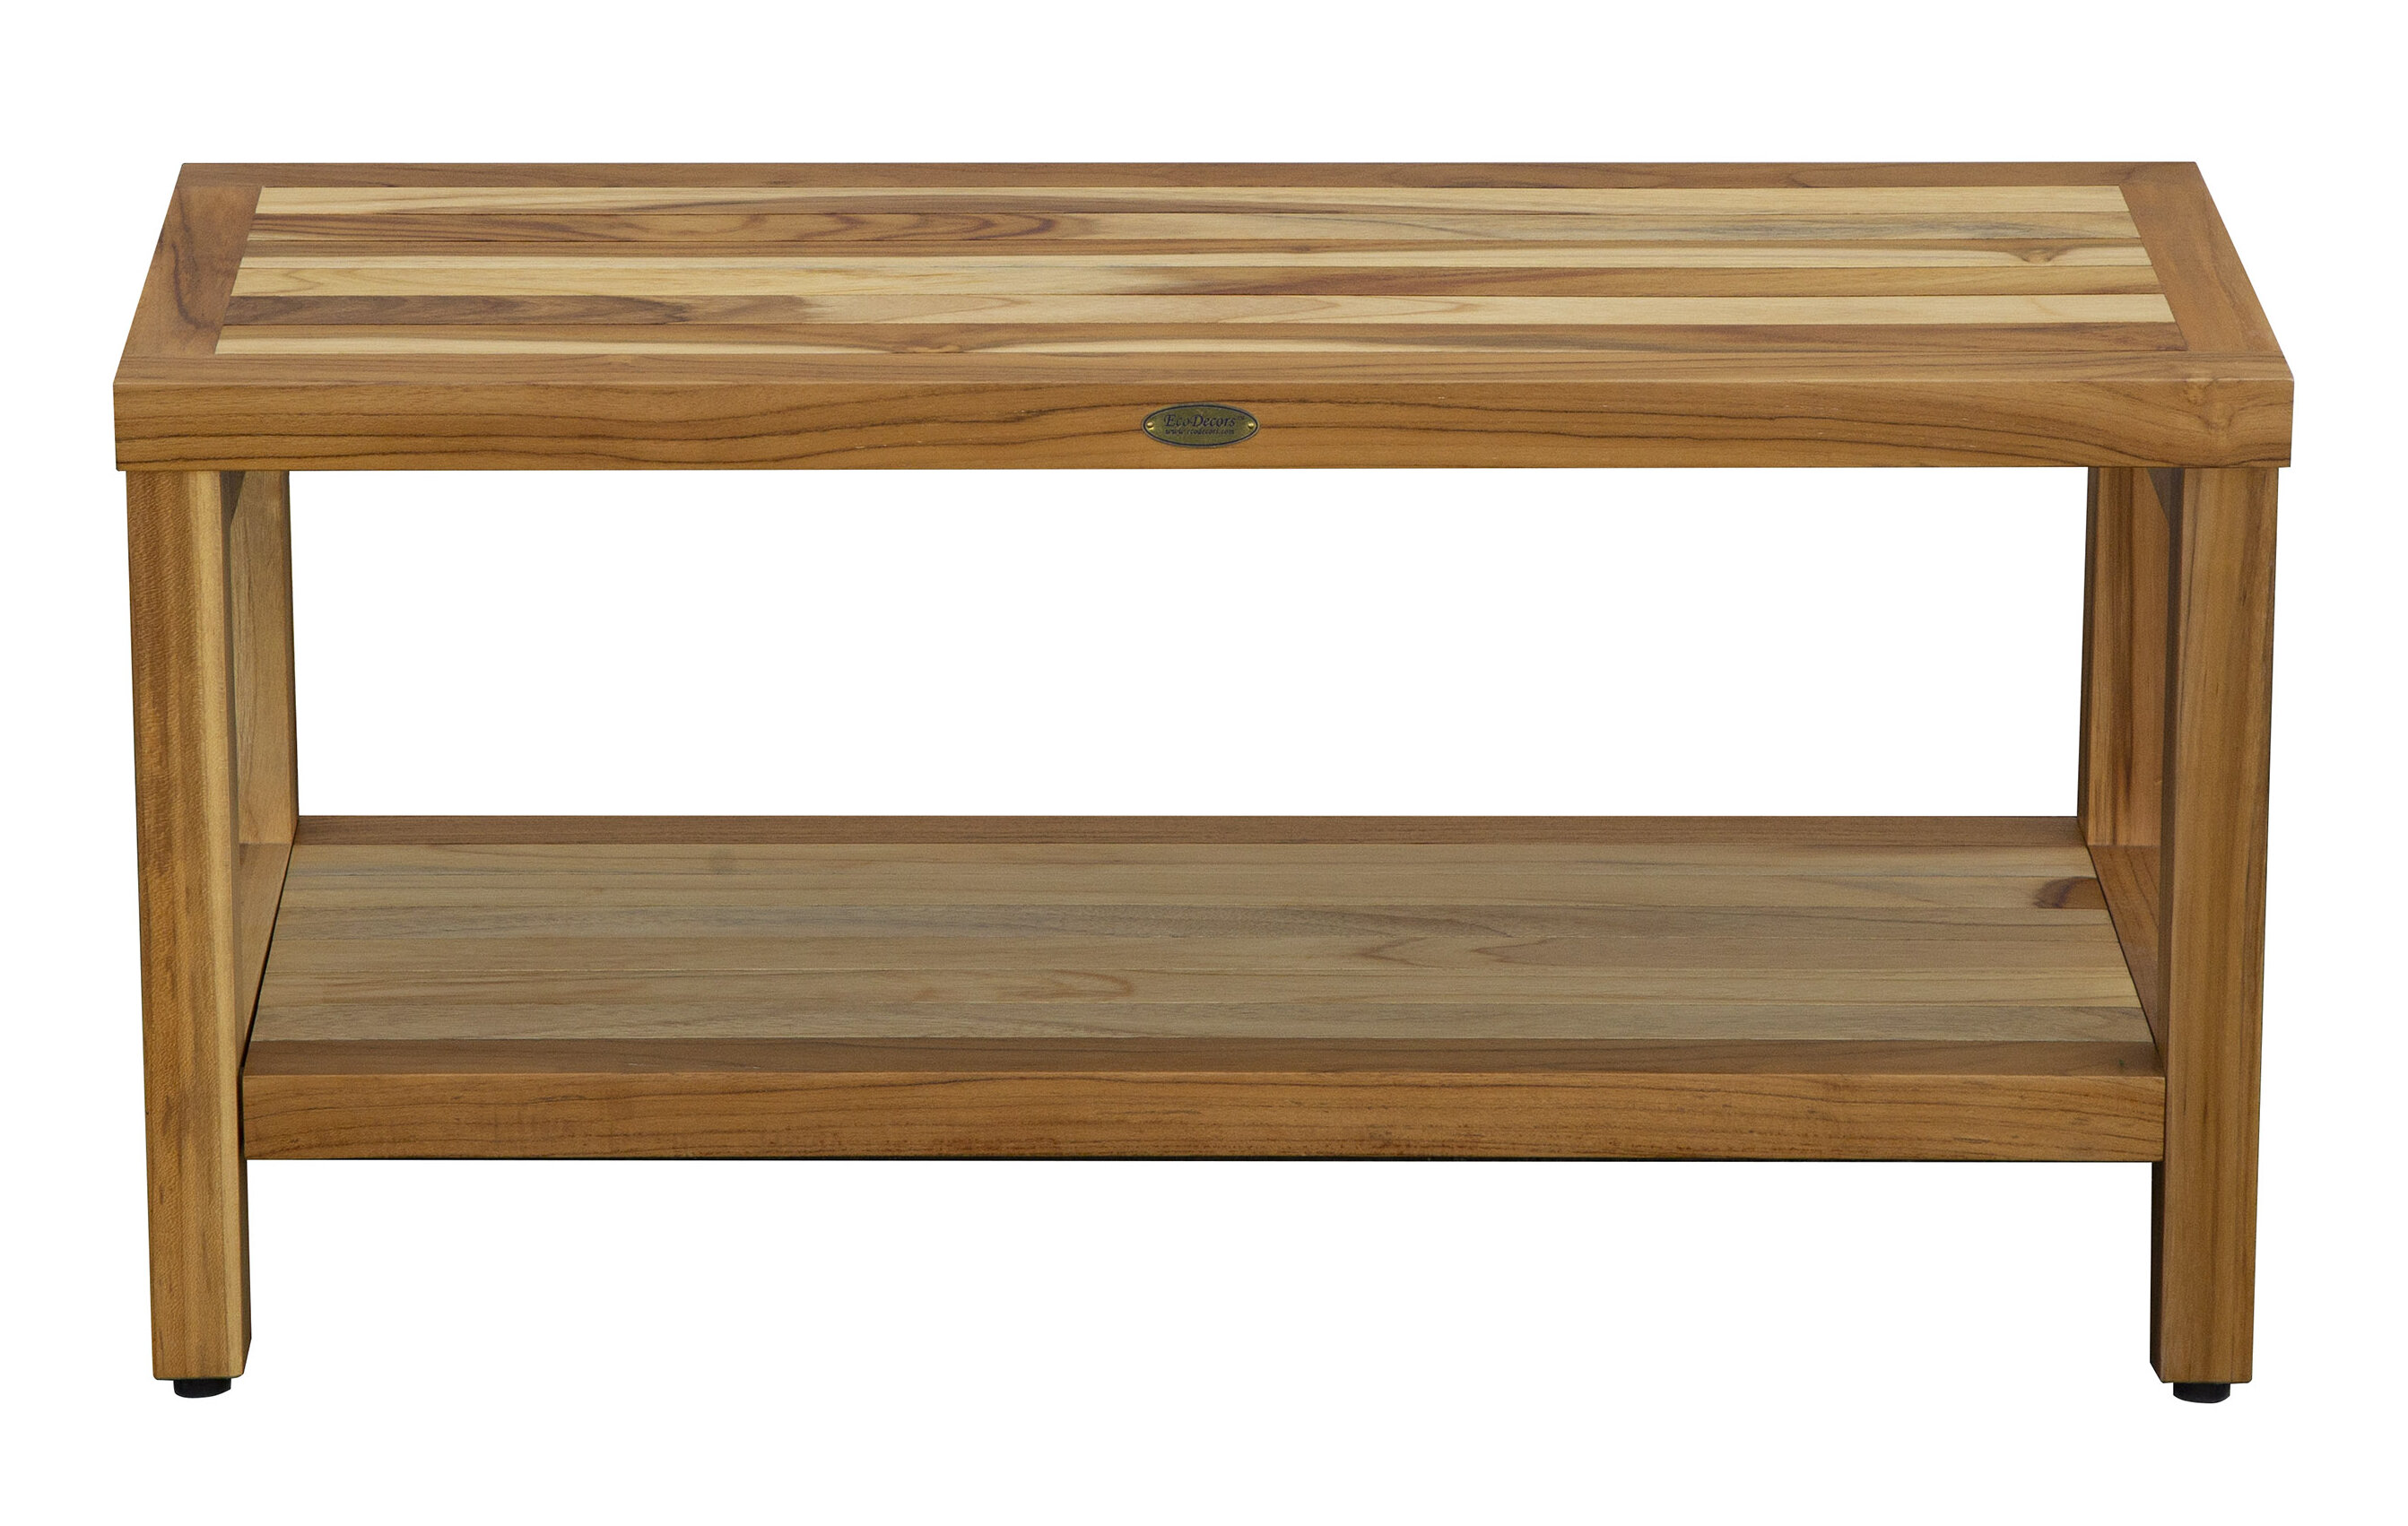 Brilliant Eleganto Teak Shower Bench Gmtry Best Dining Table And Chair Ideas Images Gmtryco